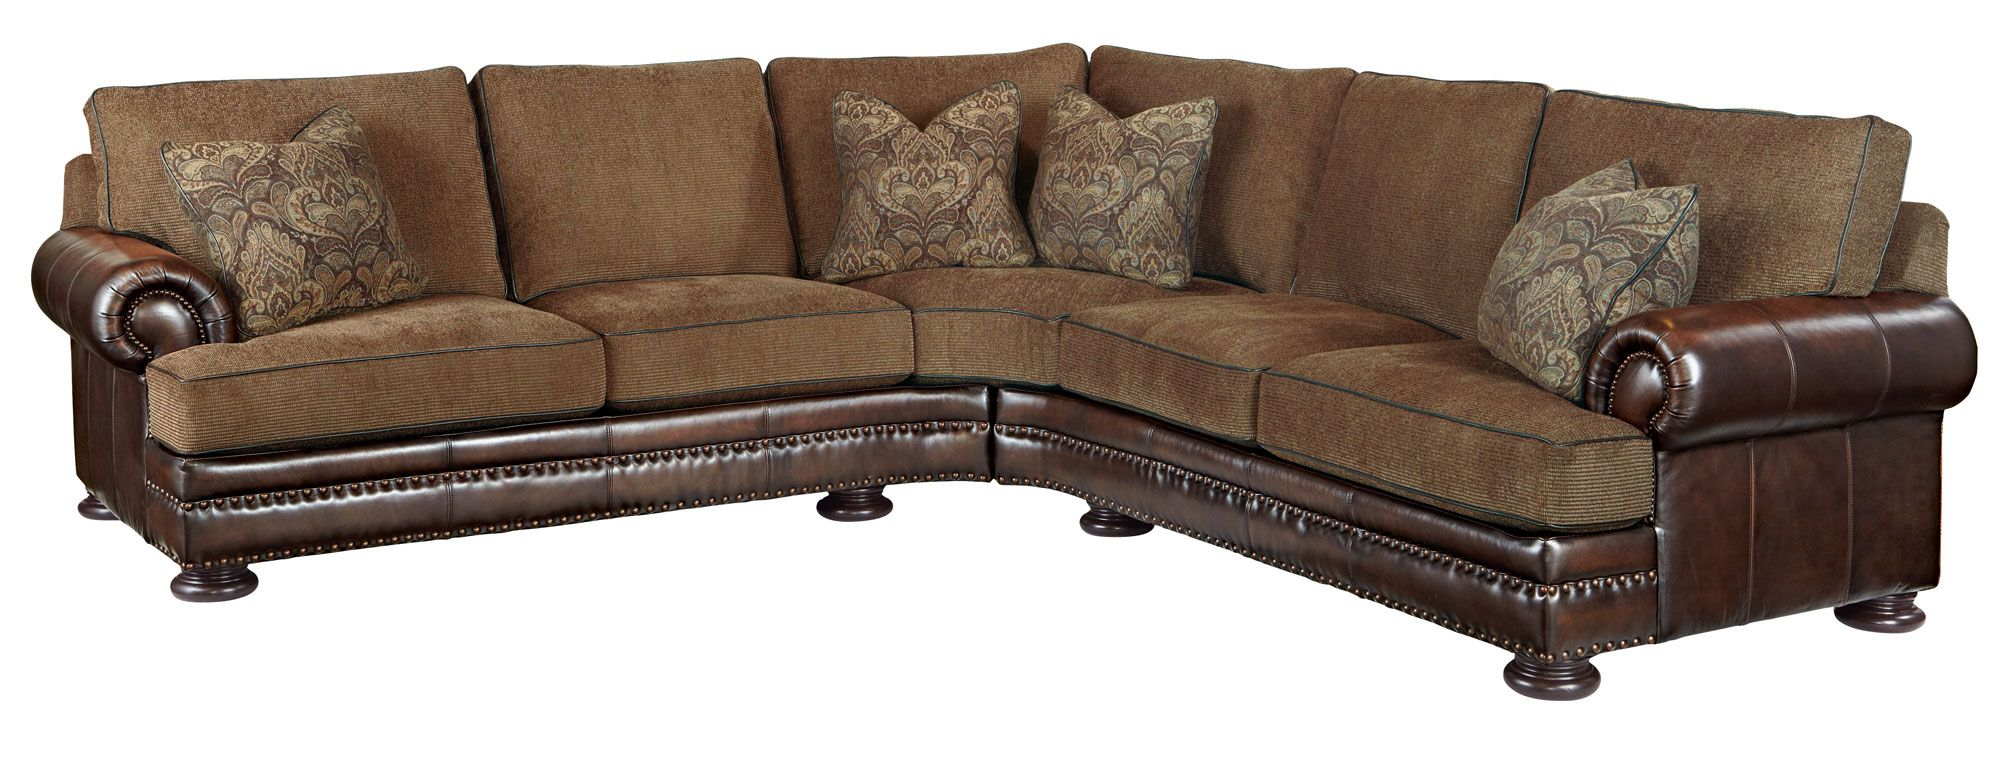 Traditional Sectional L Shaped Sofa Design Ideas For Living Room Furniture  With Sweet Brown Leather Sofa